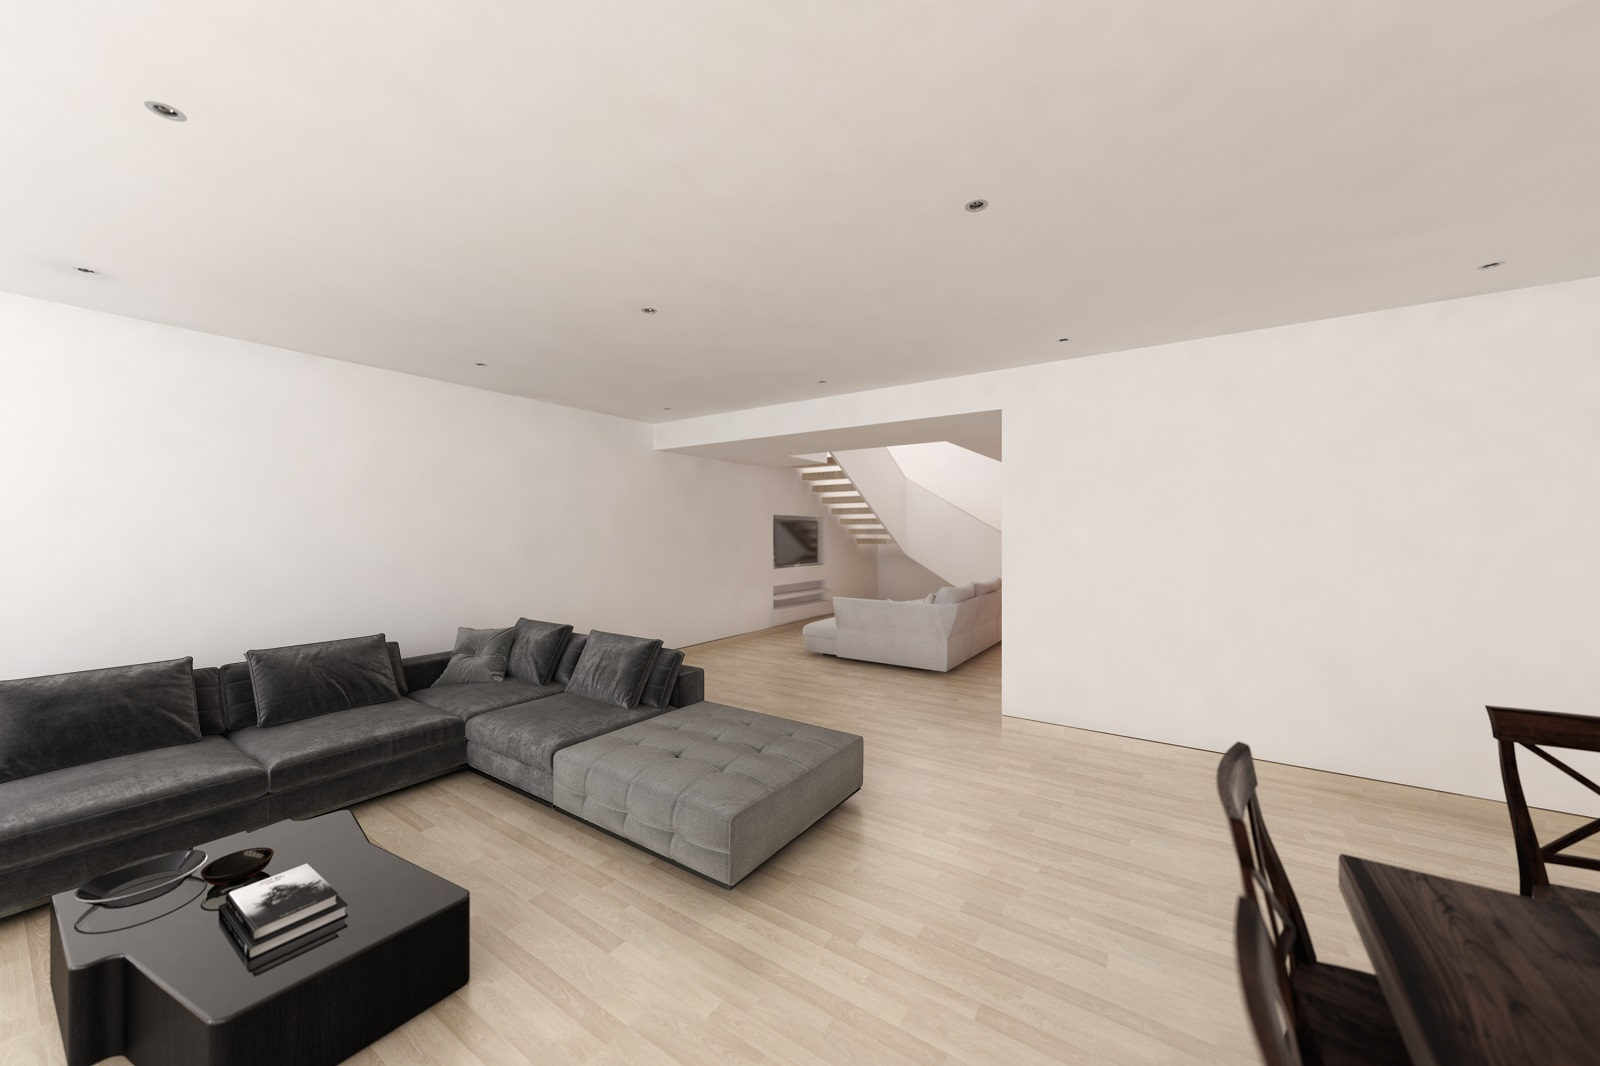 http://miragearchitects.ir/index.php/projects/apartment-no-20/